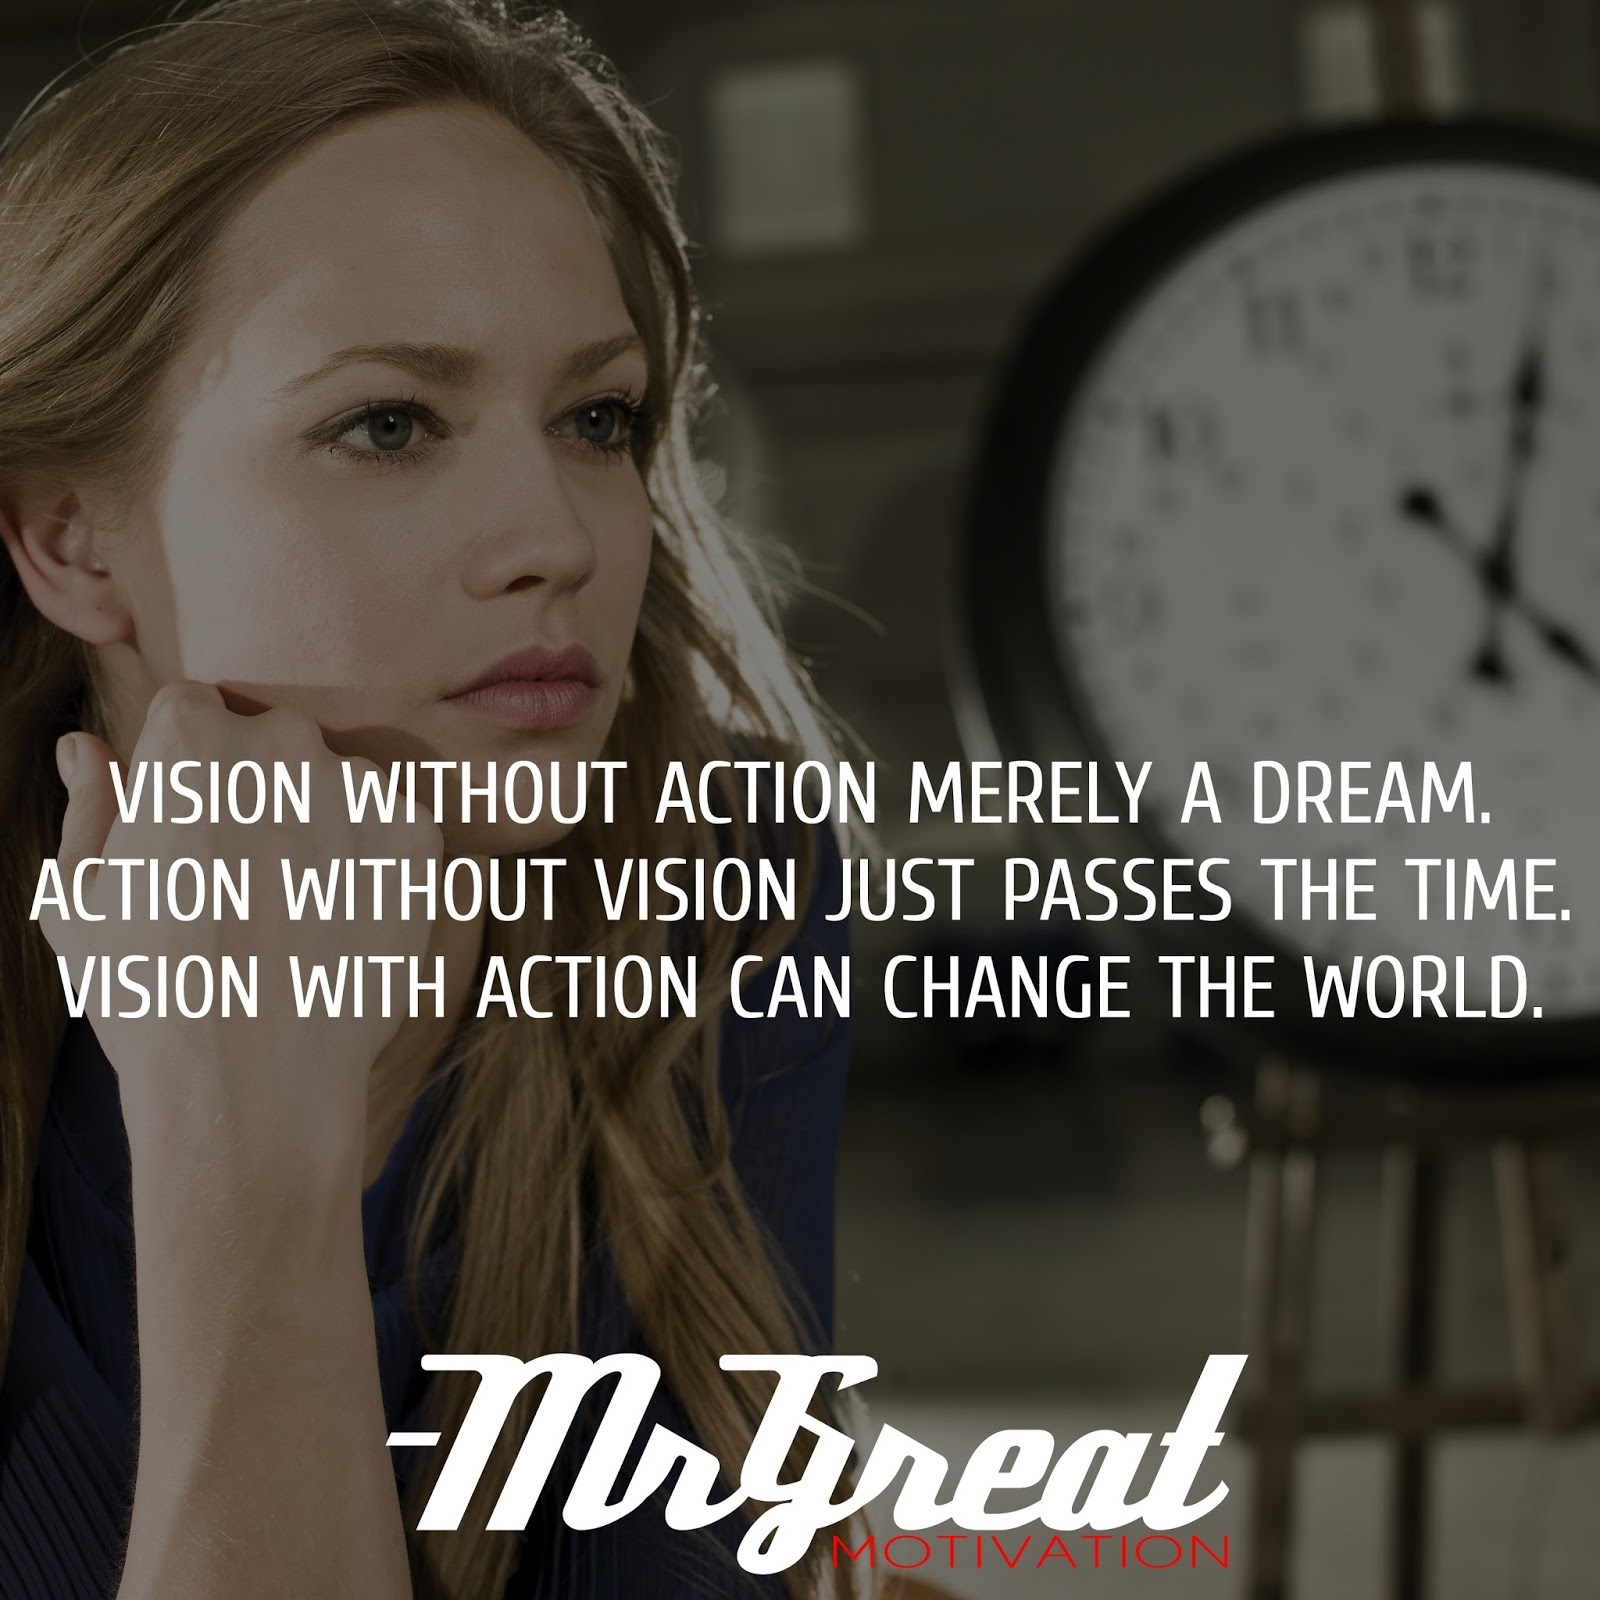 Vision without action is merely a dream. Action without vision just passes the time. Vision with action can change the world. - Joel Barker